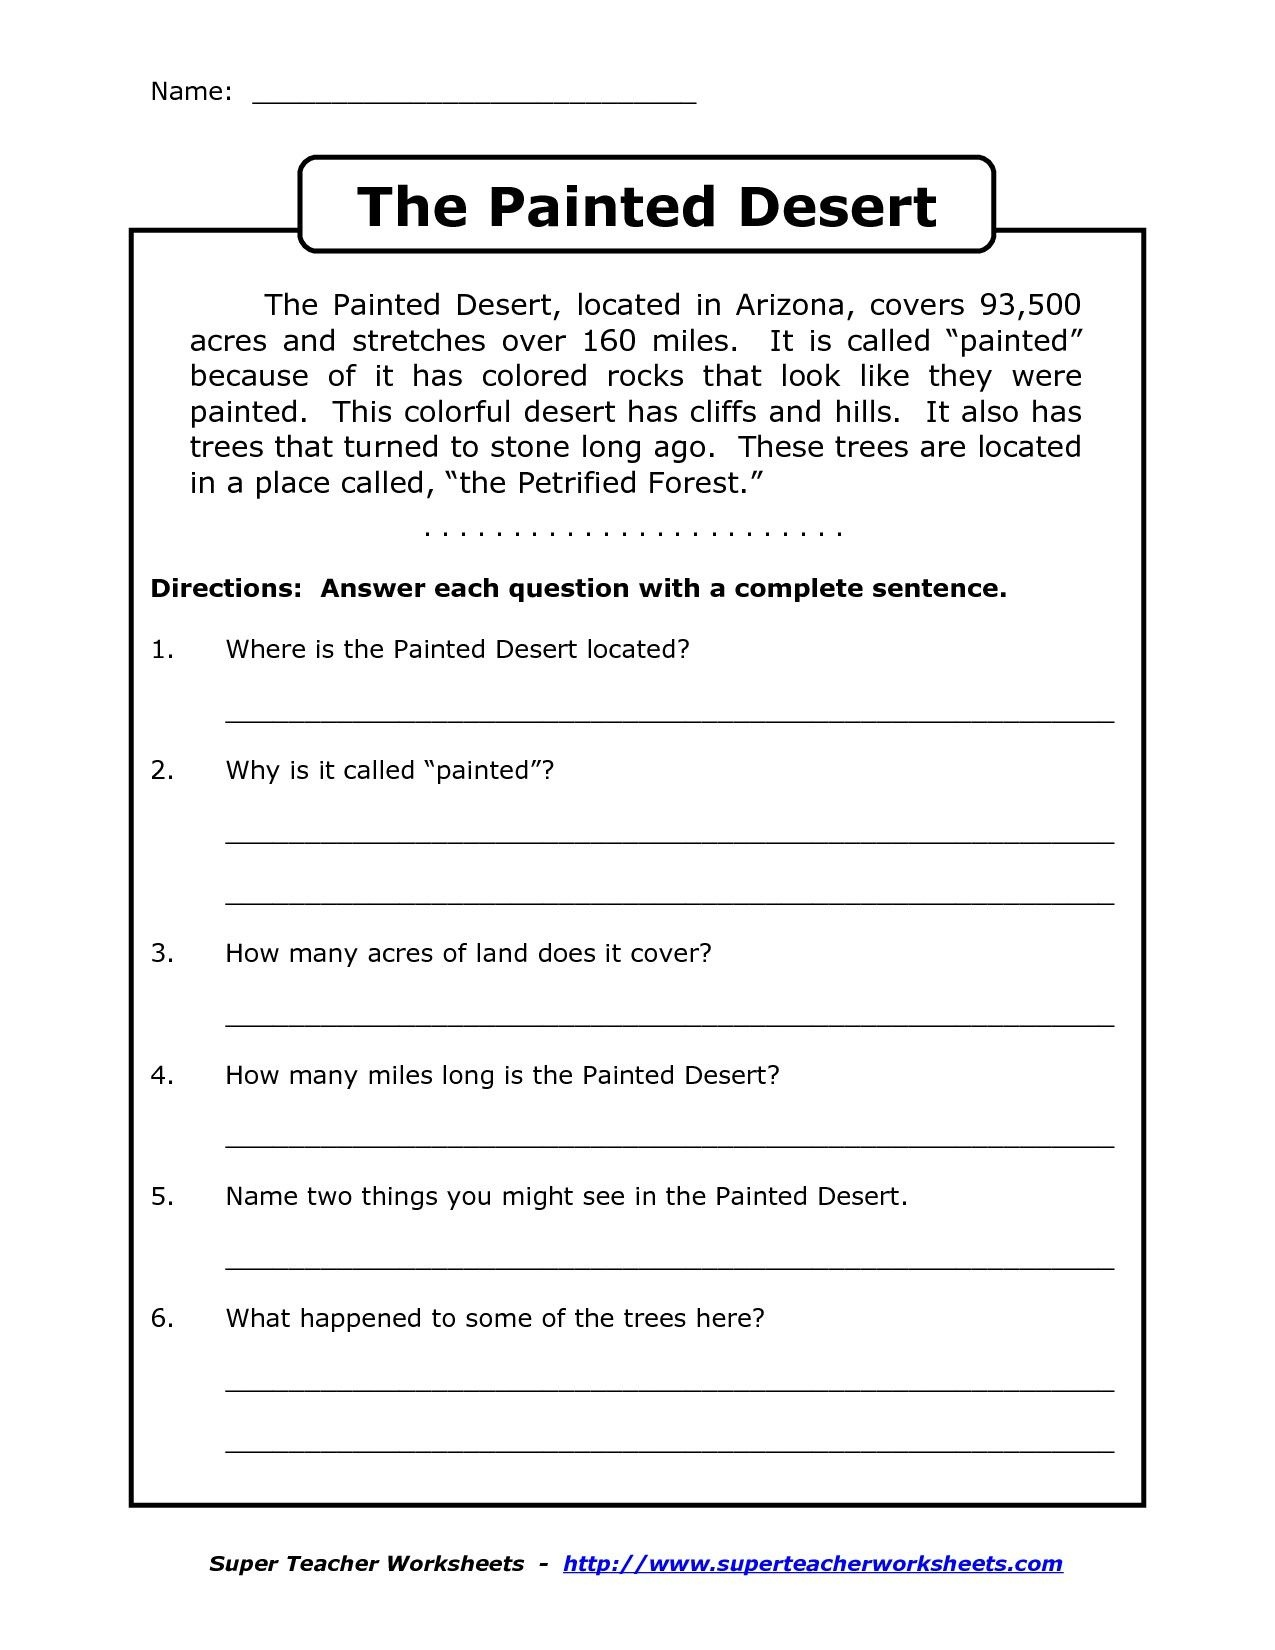 Worksheet: Free Printable Reading Comprehension Worksheets. New - Free Printable Literacy Worksheets For Adults